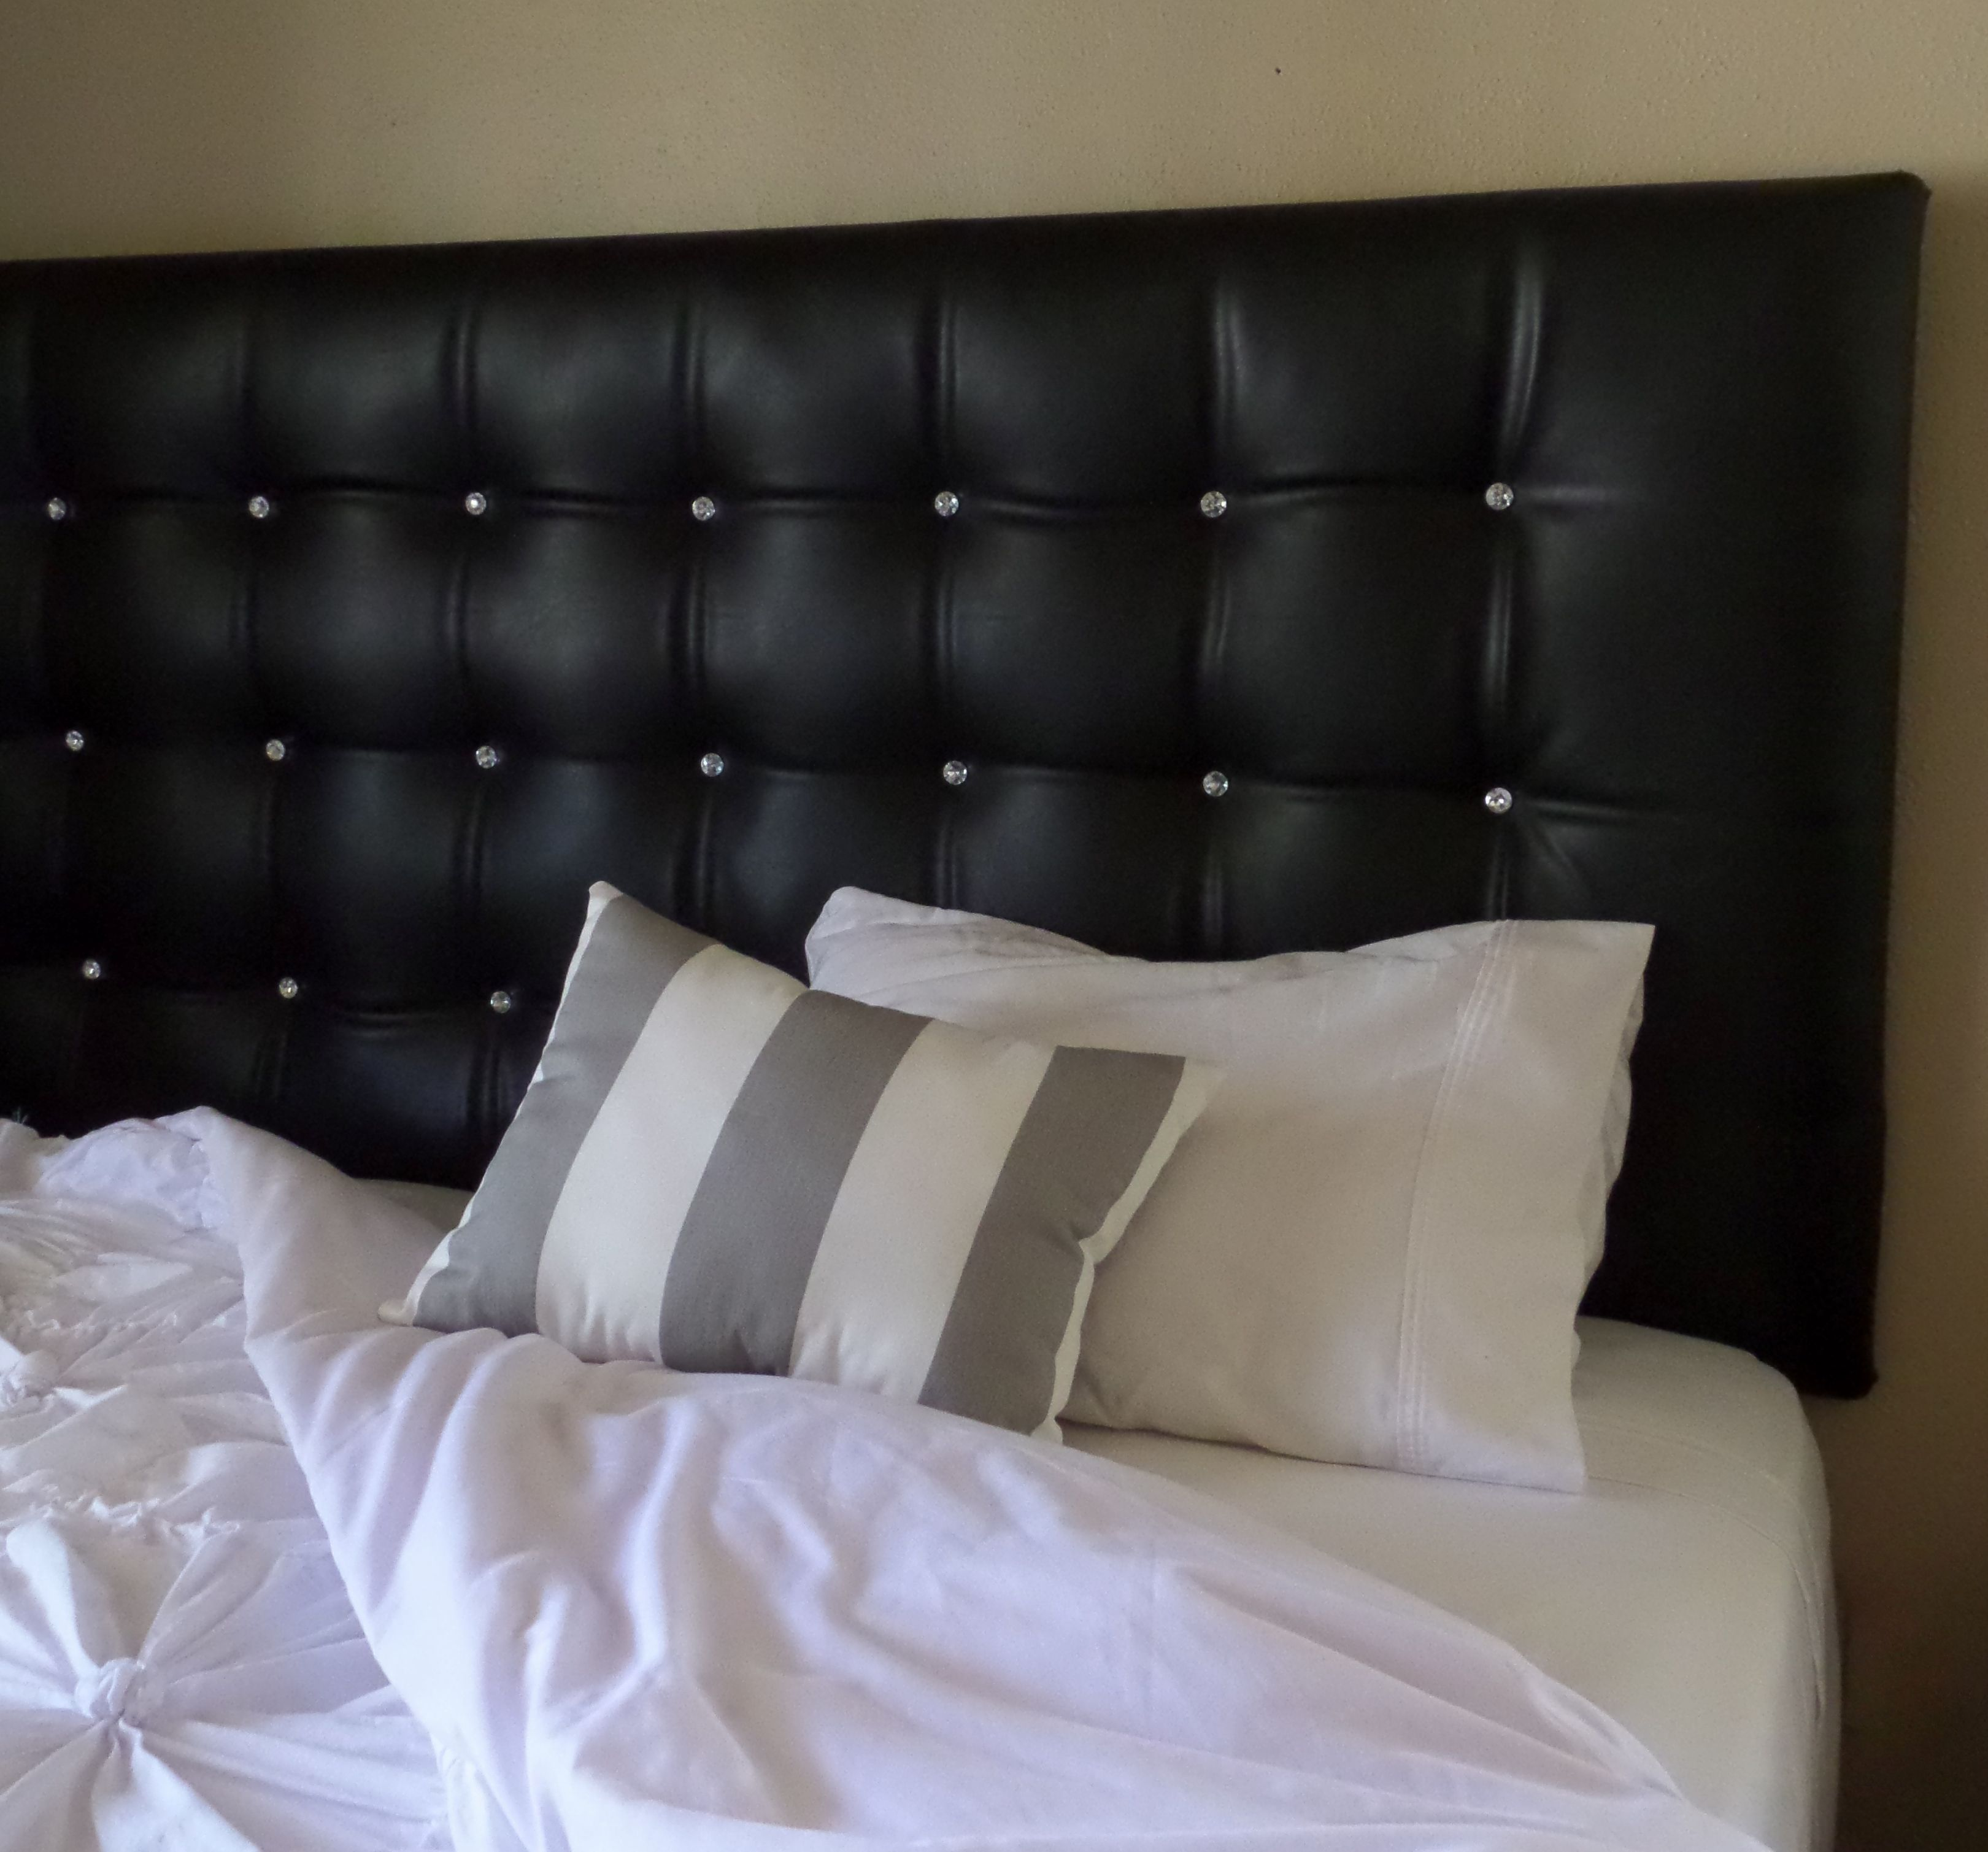 King Size Black Faux Leather Tufted Upholstered Headboard Crystal Buttons Wall Mounted Cus Tufted Upholstered Bed Tufted Upholstered Headboard Upholstered Beds